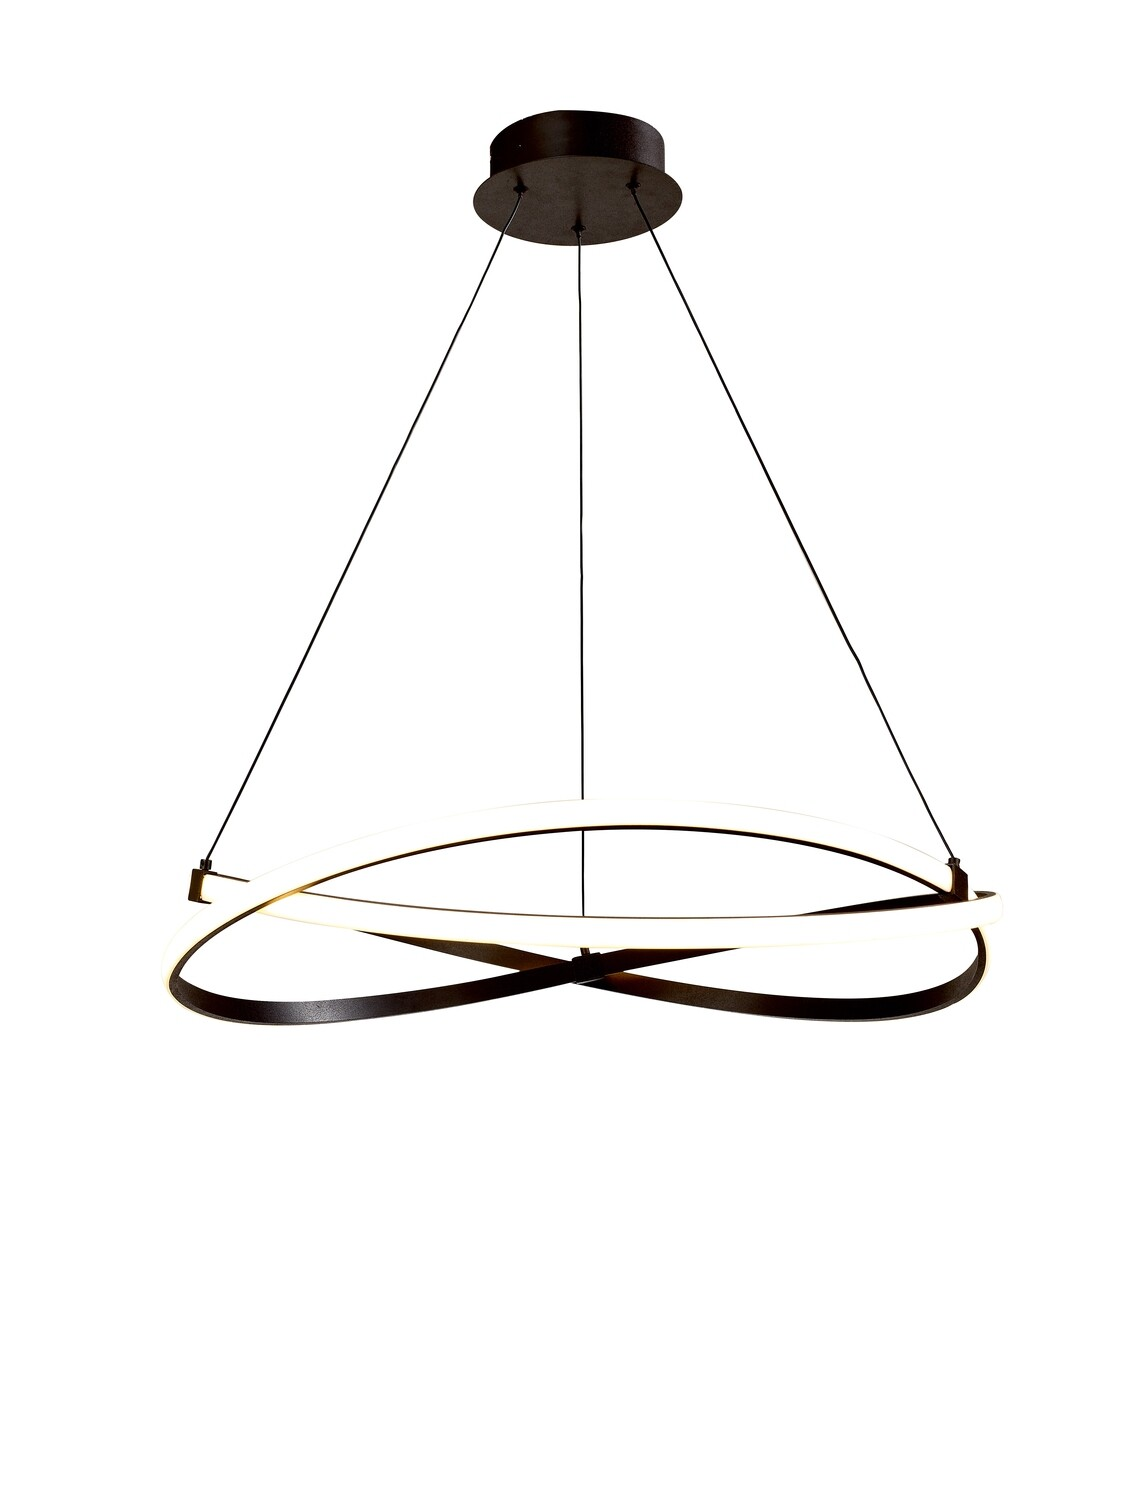 Infinity Pendant 60W LED 2800K, 4500lm, Brown Oxide/White Acrylic,